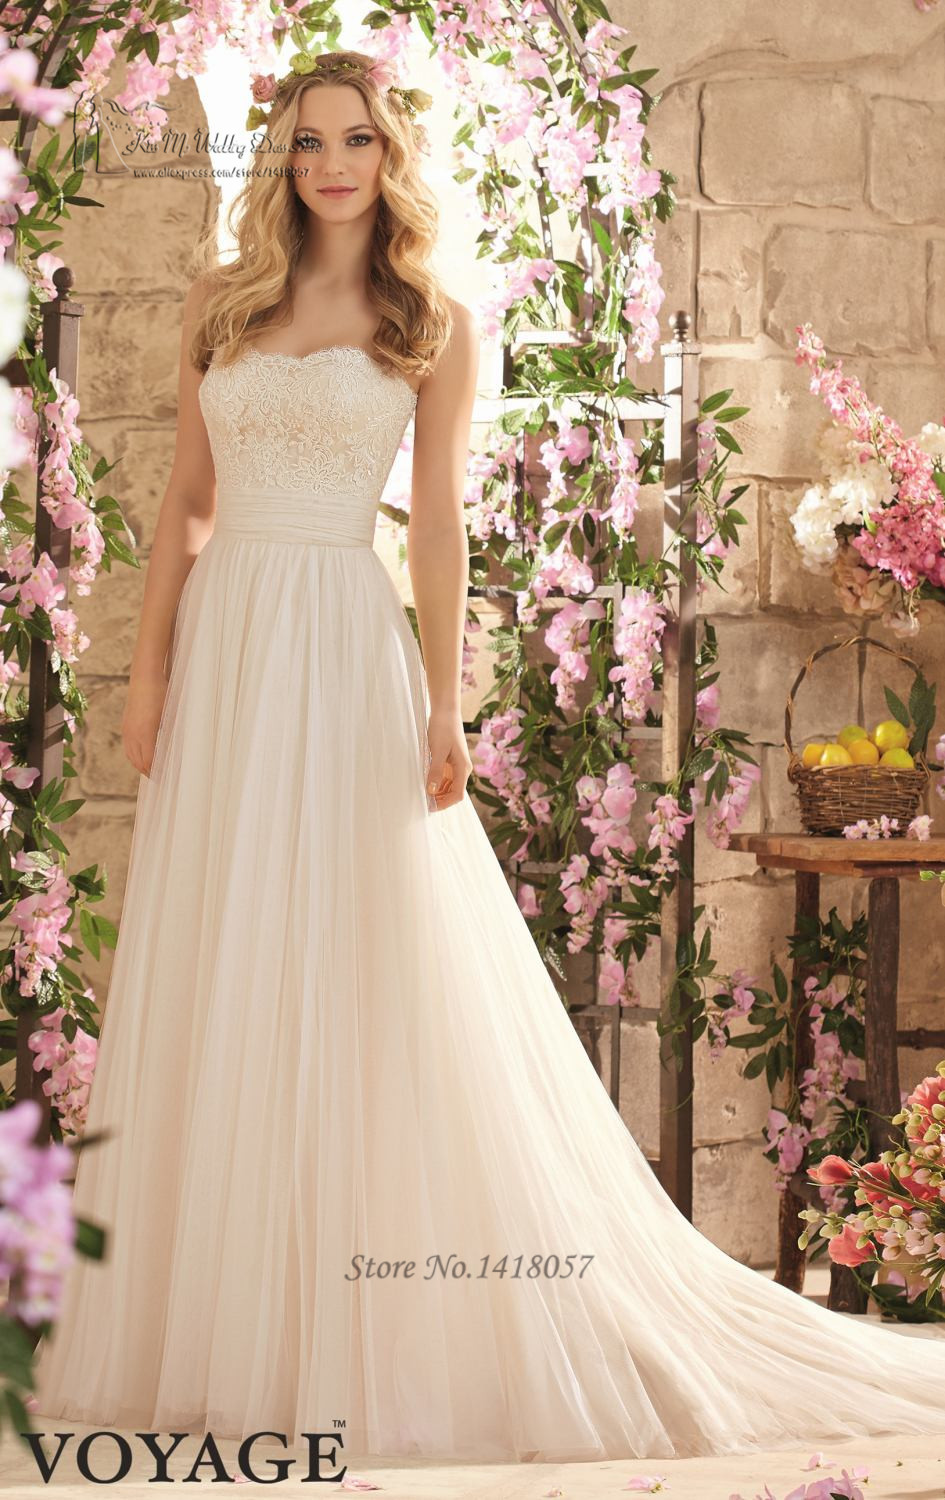 Aliexpress.com : Buy Hot Sell Vintage Boho Wedding Dress Lace 2016 ...